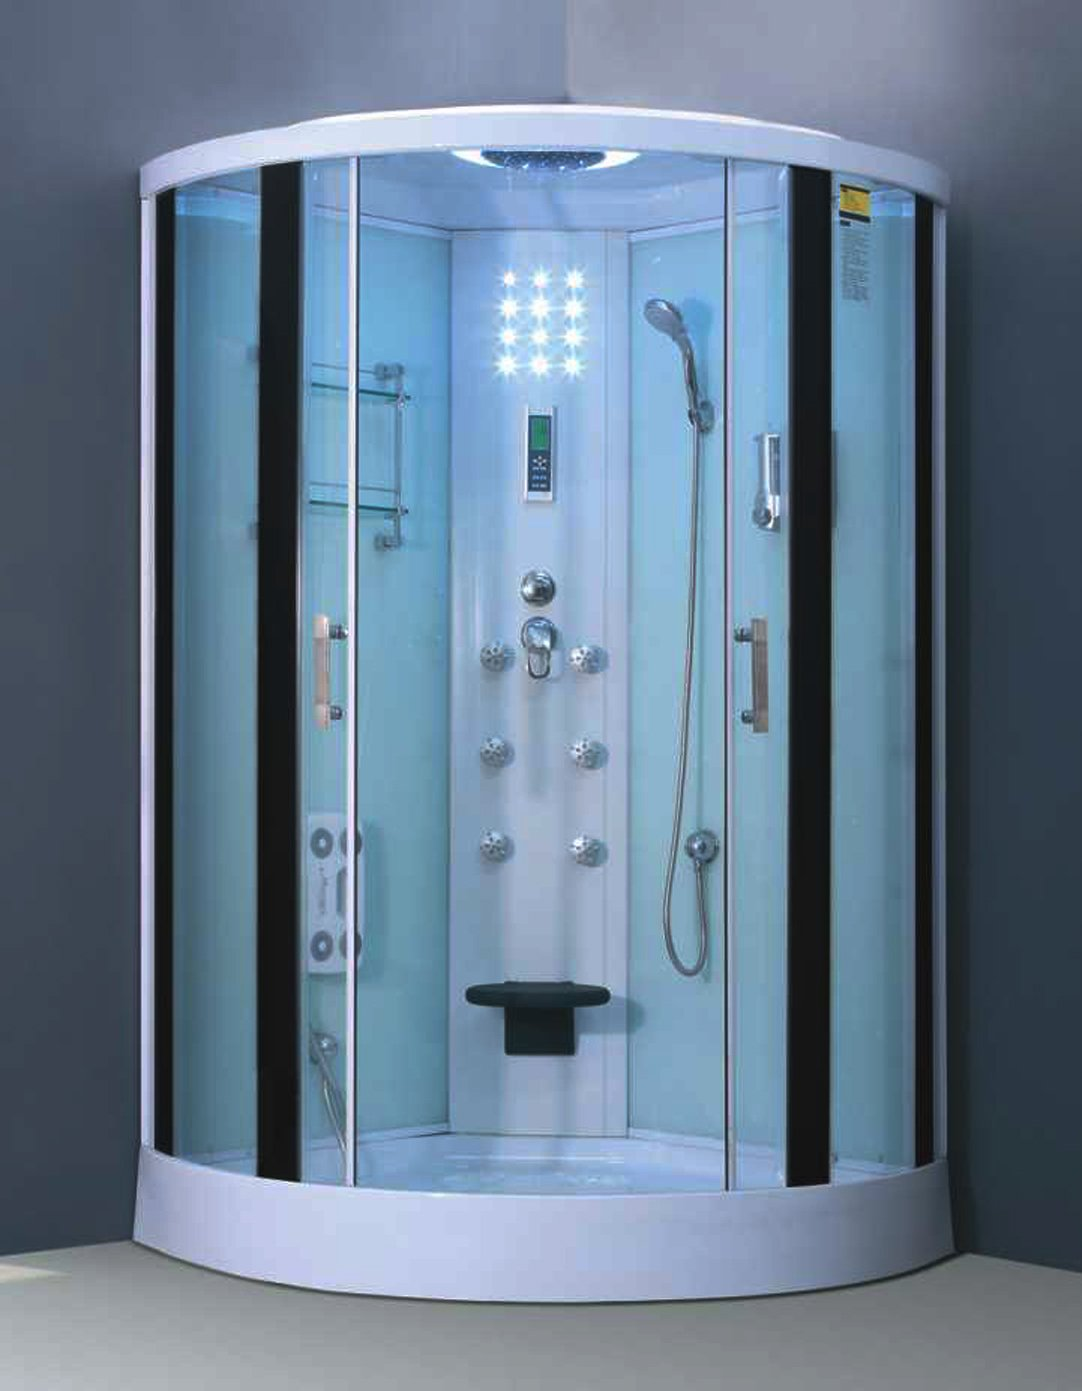 Luxury European Style Shower Enclosure S-4848 - - Amazon.com